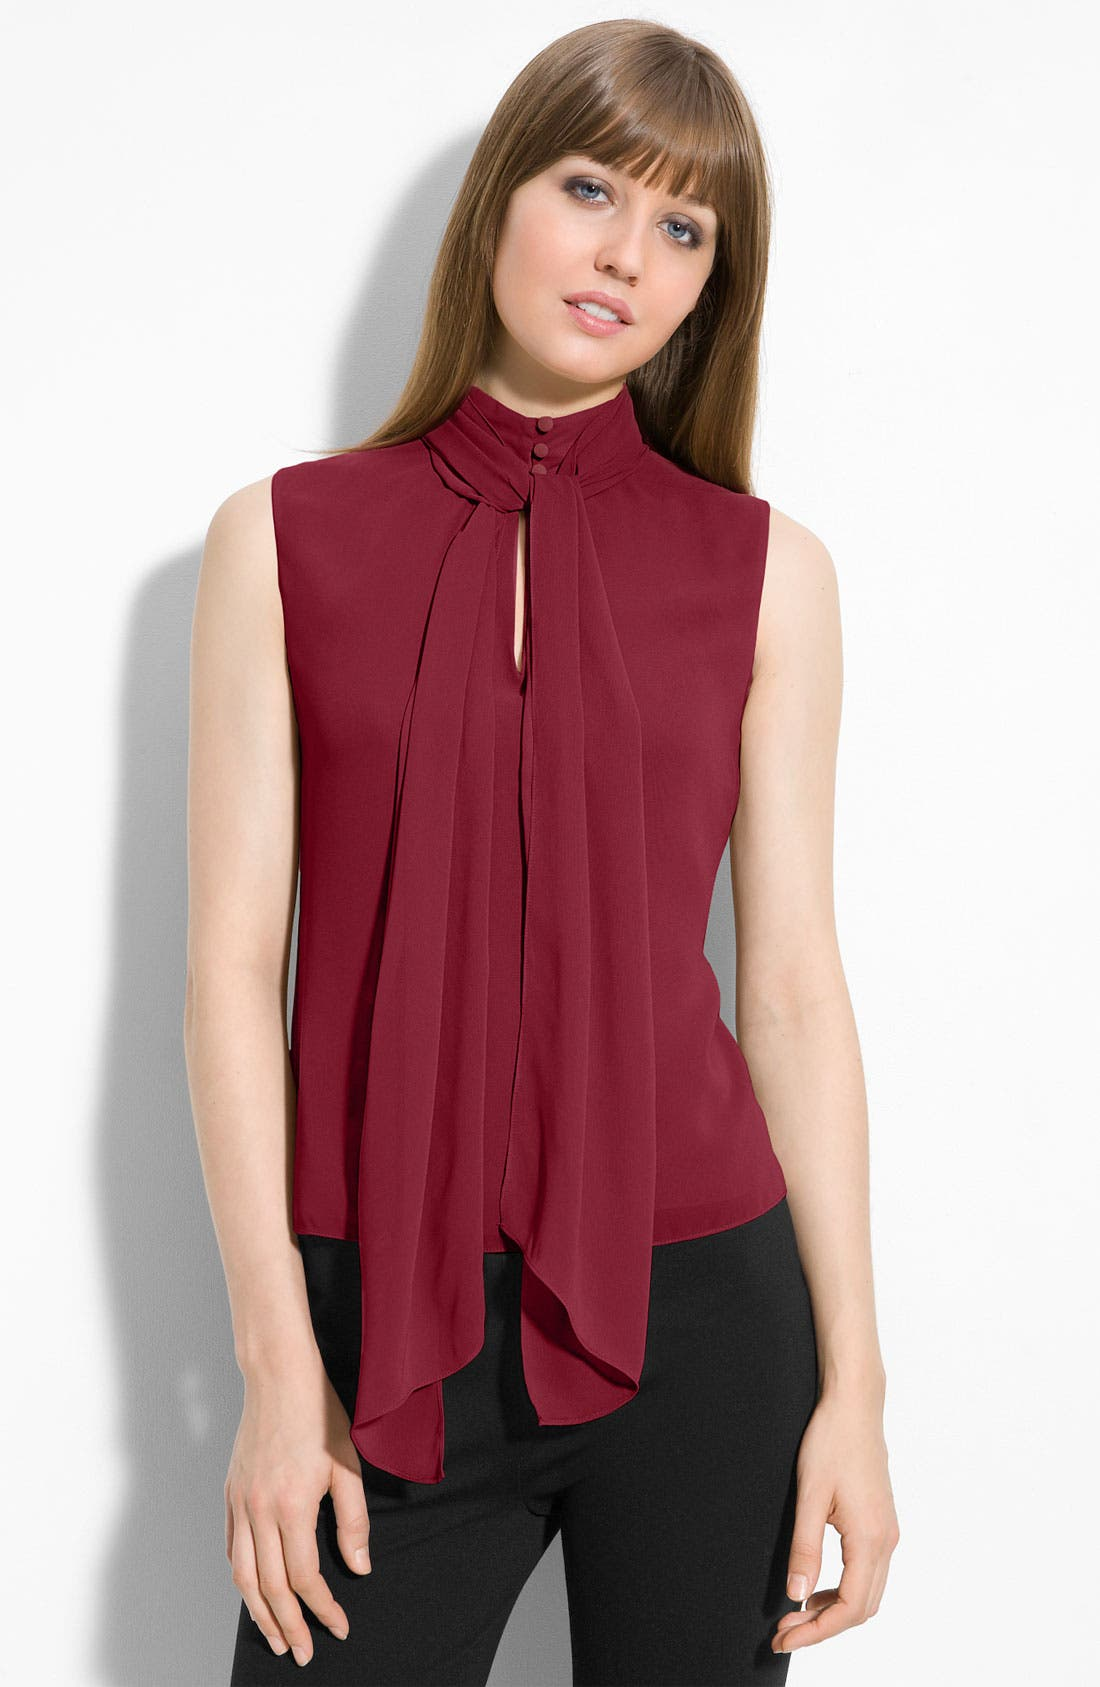 Alternate Image 1 Selected - Vince Camuto Sleeveless Tie Neck Blouse (Petite)